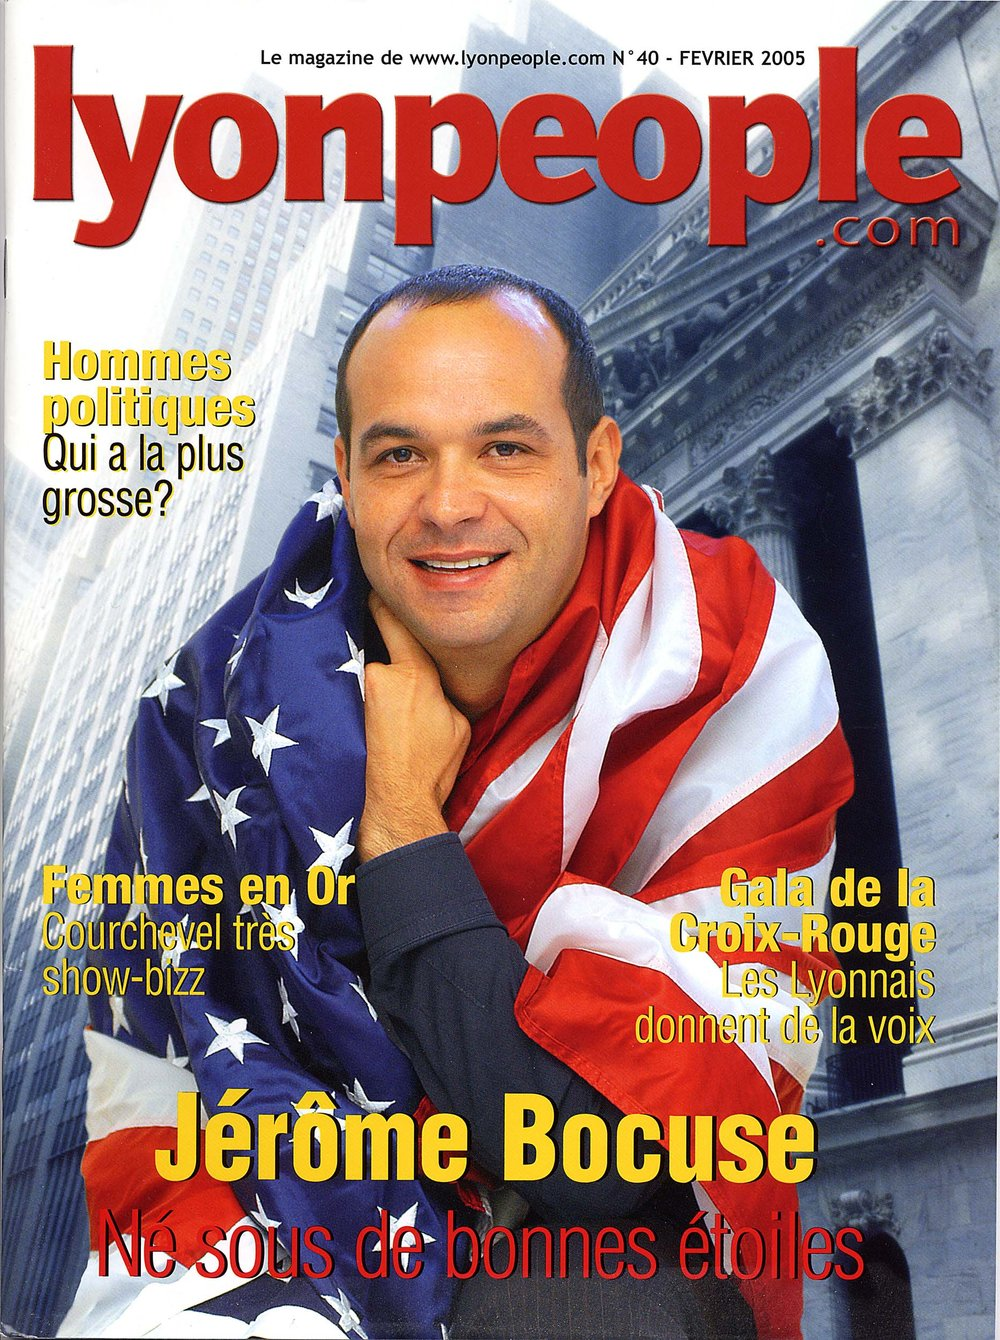 jerome_bocuse-8.jpg